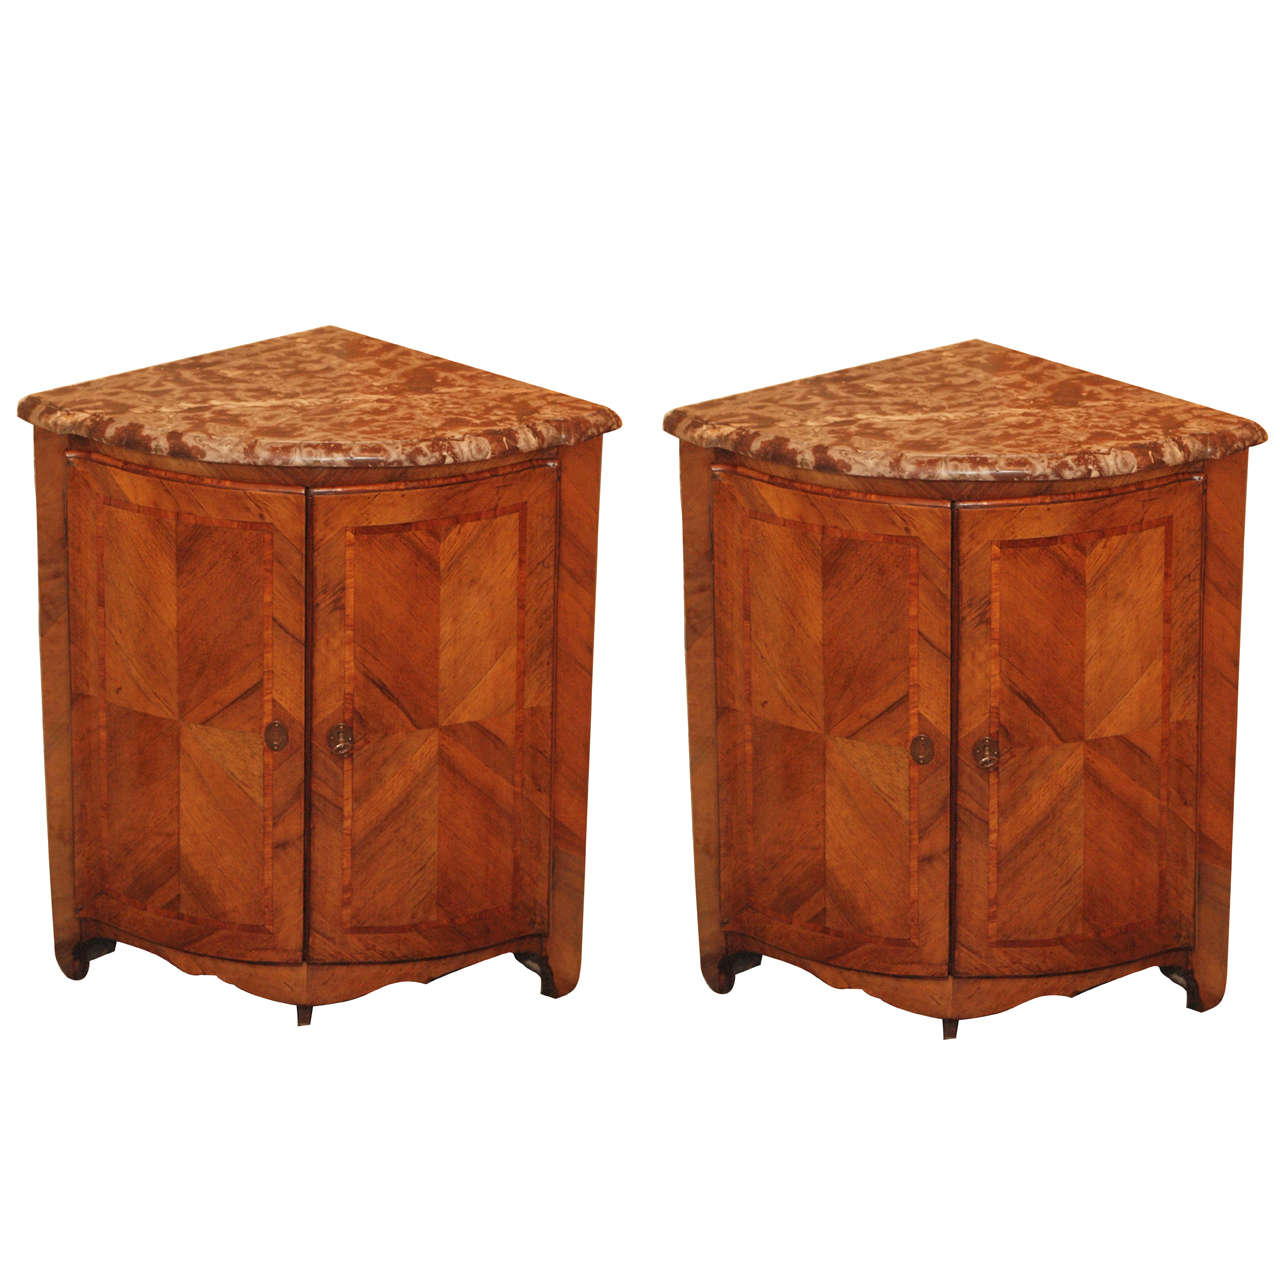 Pair Antique French Corner Cabinet For Sale - Pair Antique French Corner Cabinet At 1stdibs